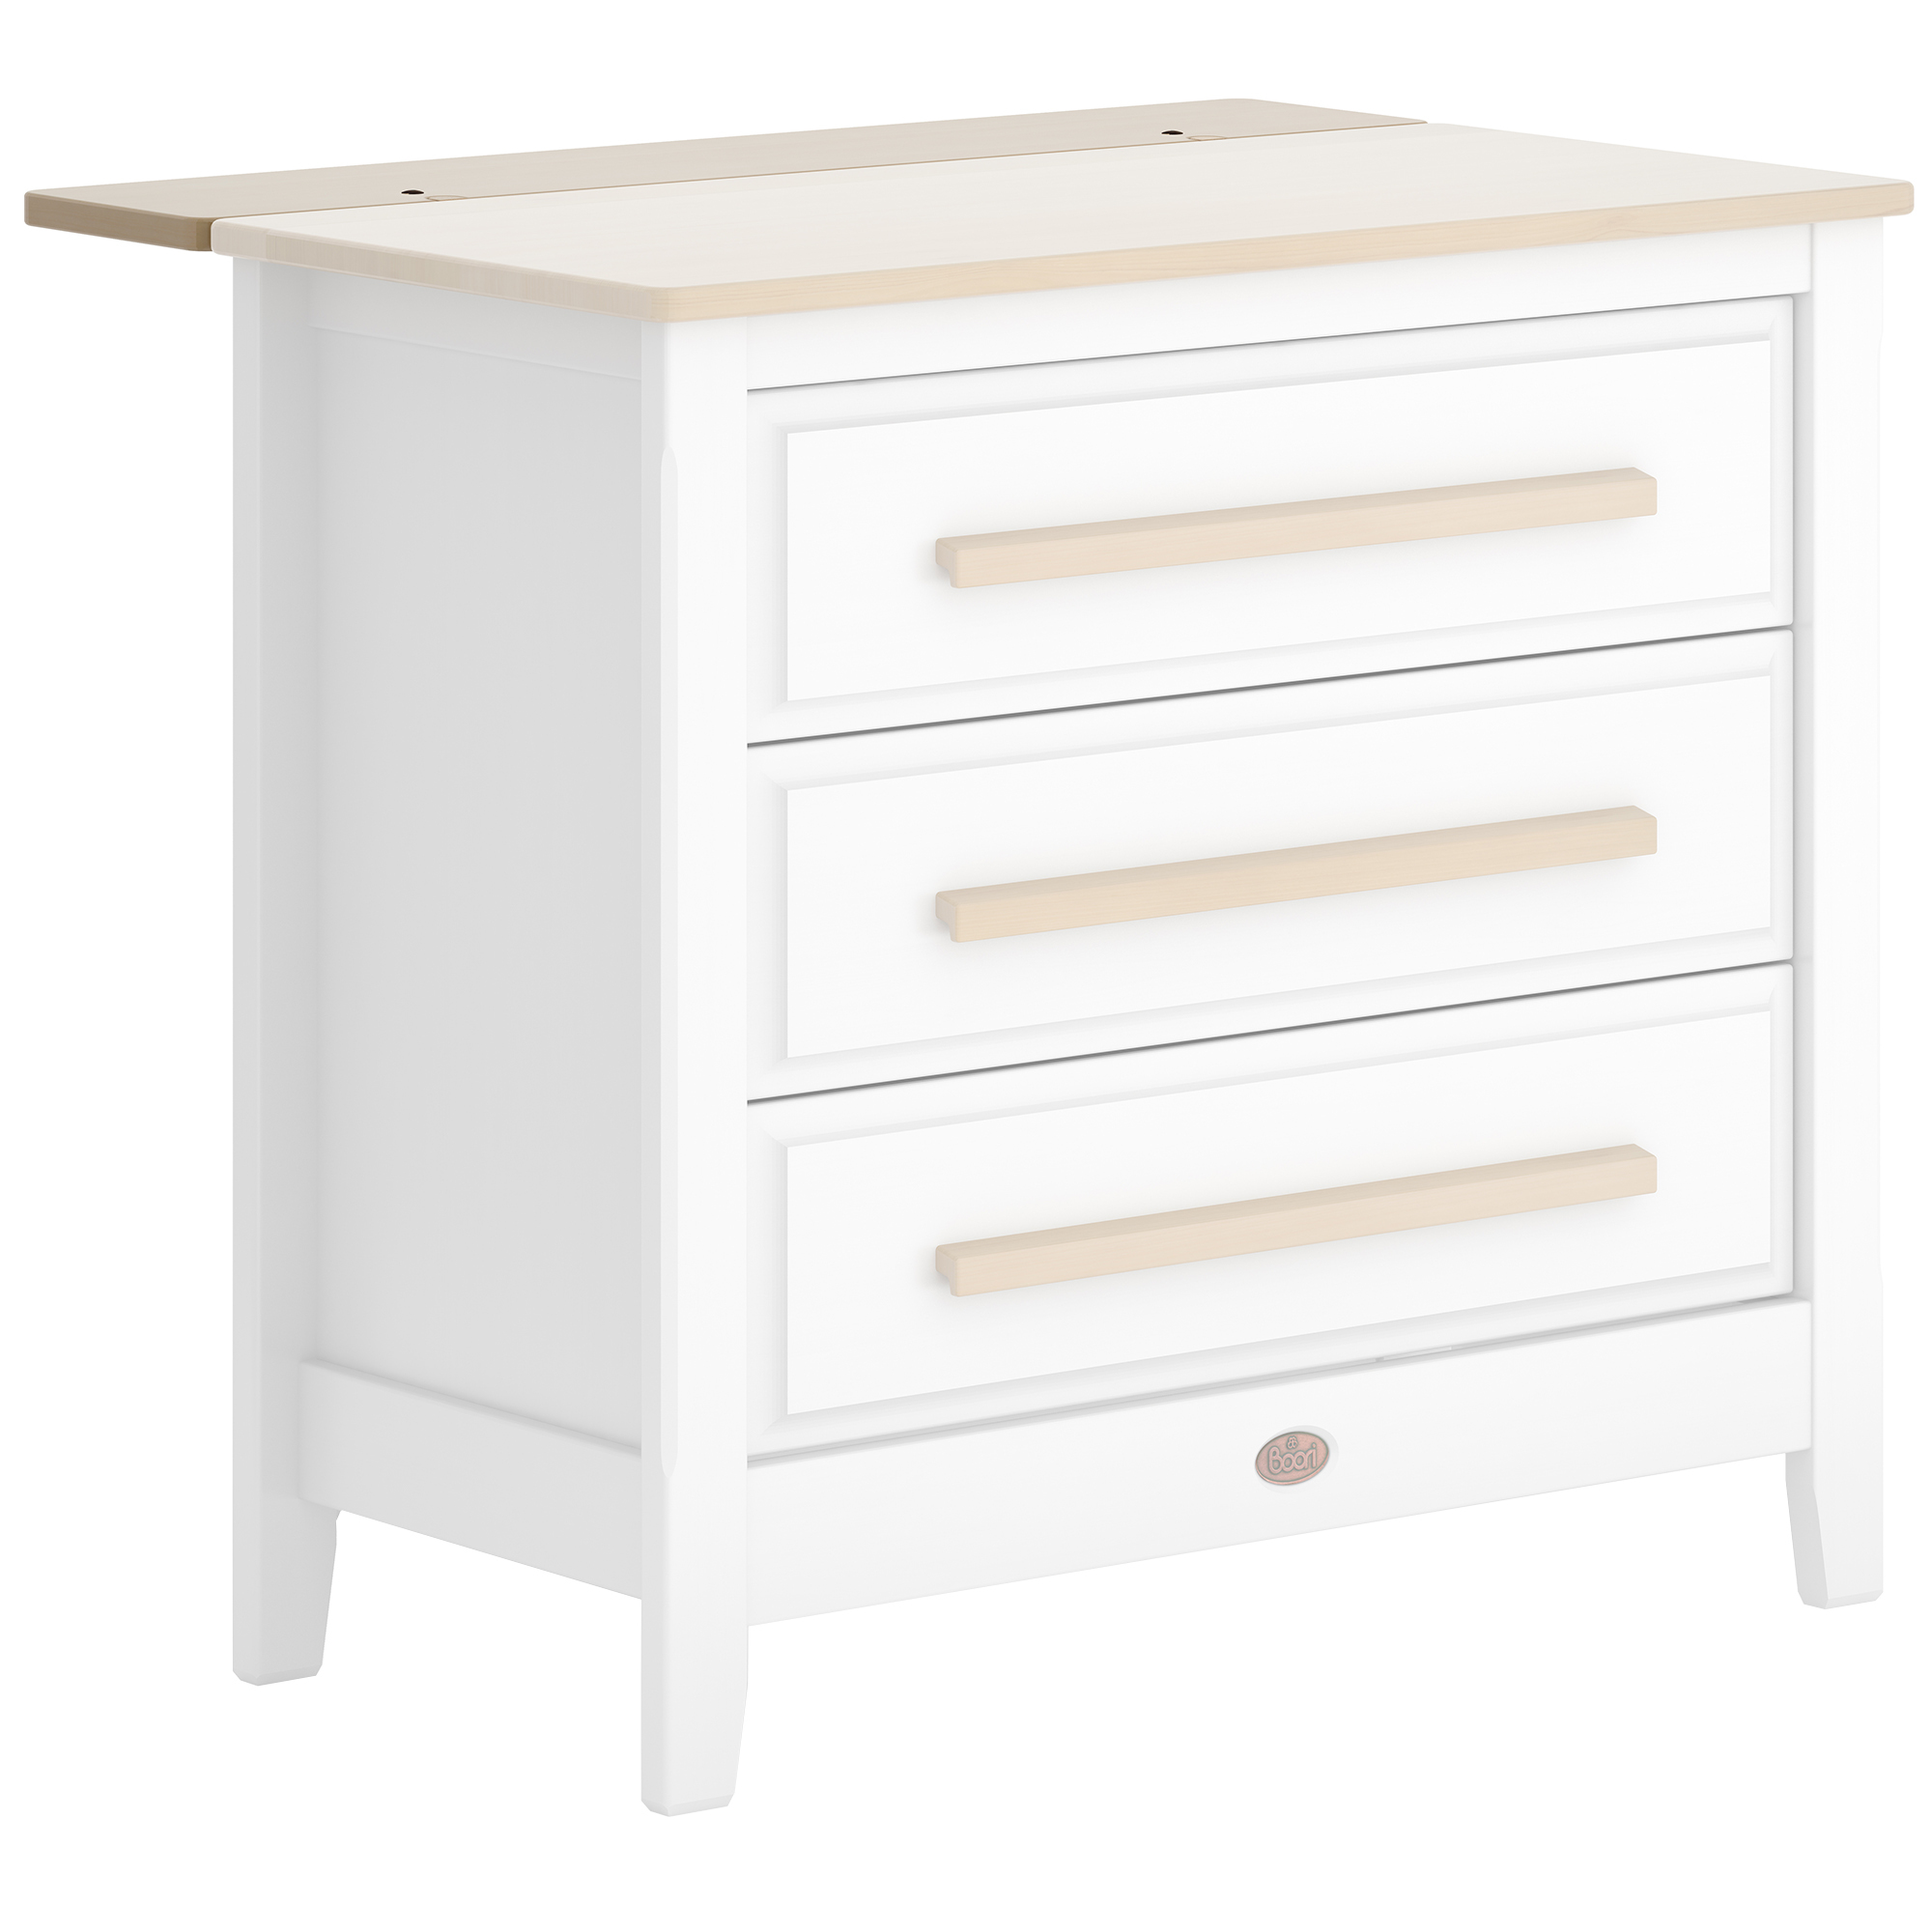 NEW Boori Wooden Chest Top Extension - Boori,Chest of Drawers | eBay